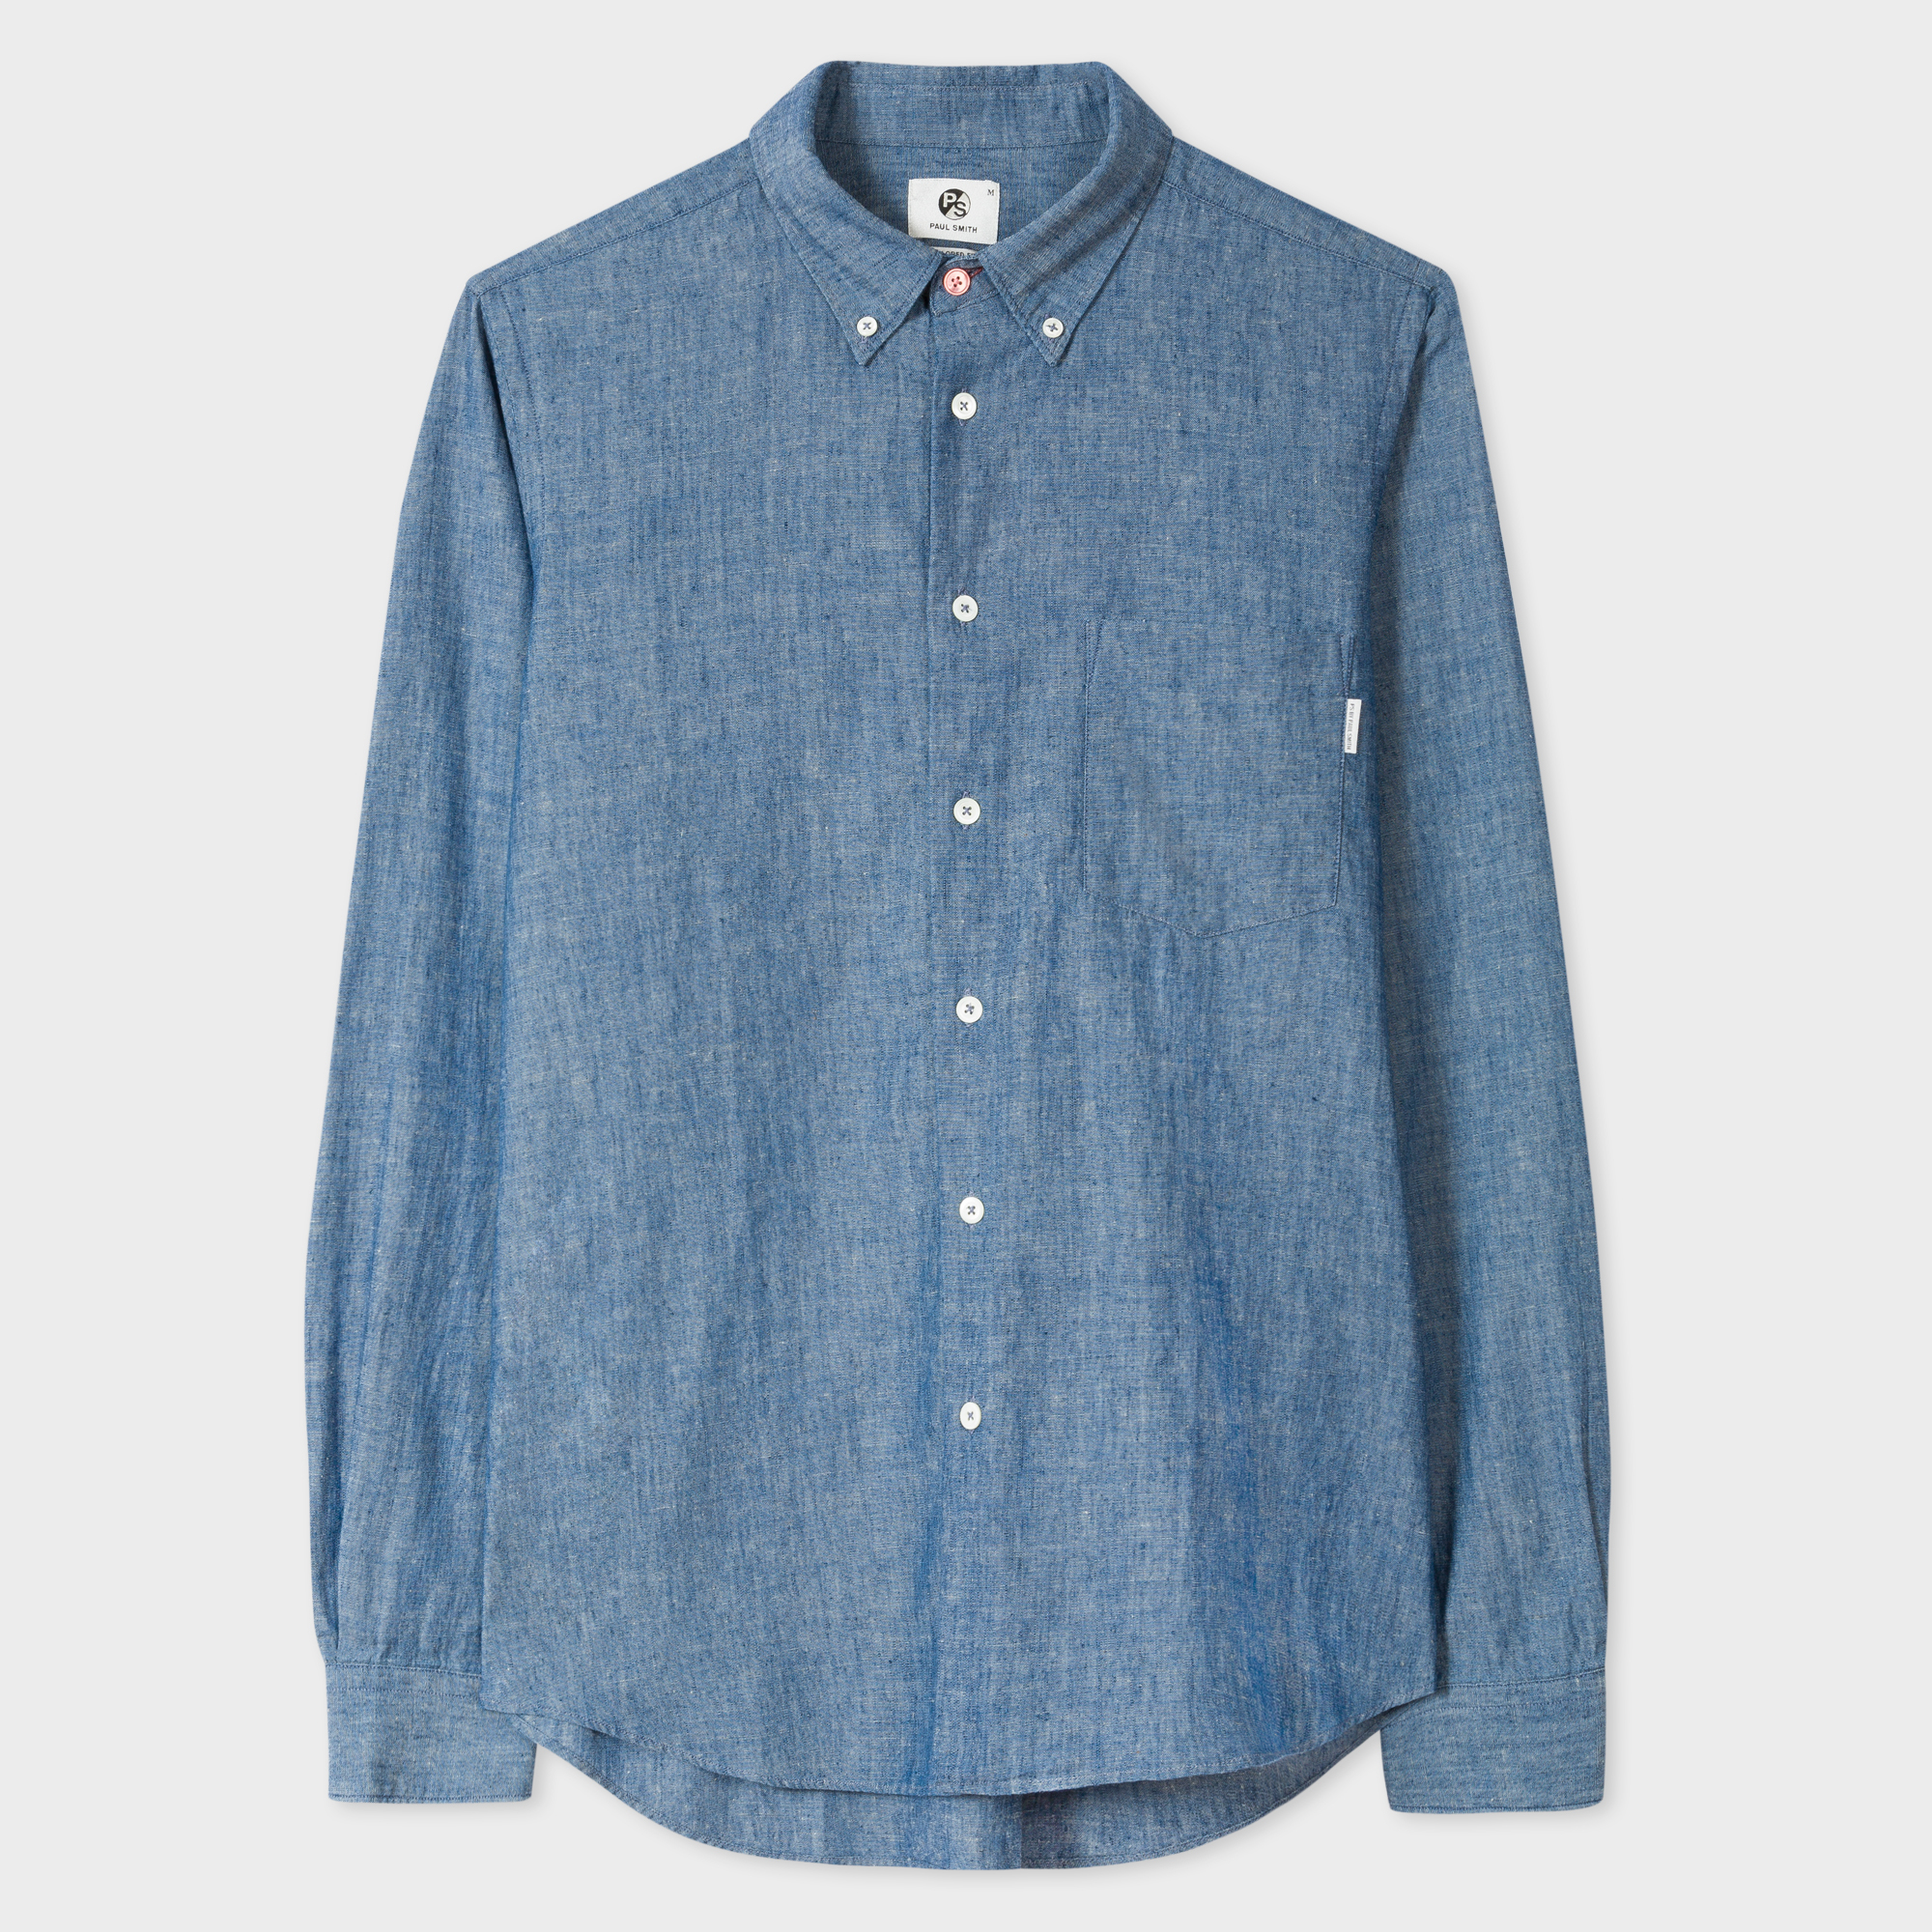 Paul Smith Men's Tailored-Fit Cotton-Linen Dark Blue Chambray Button-Down Shirt